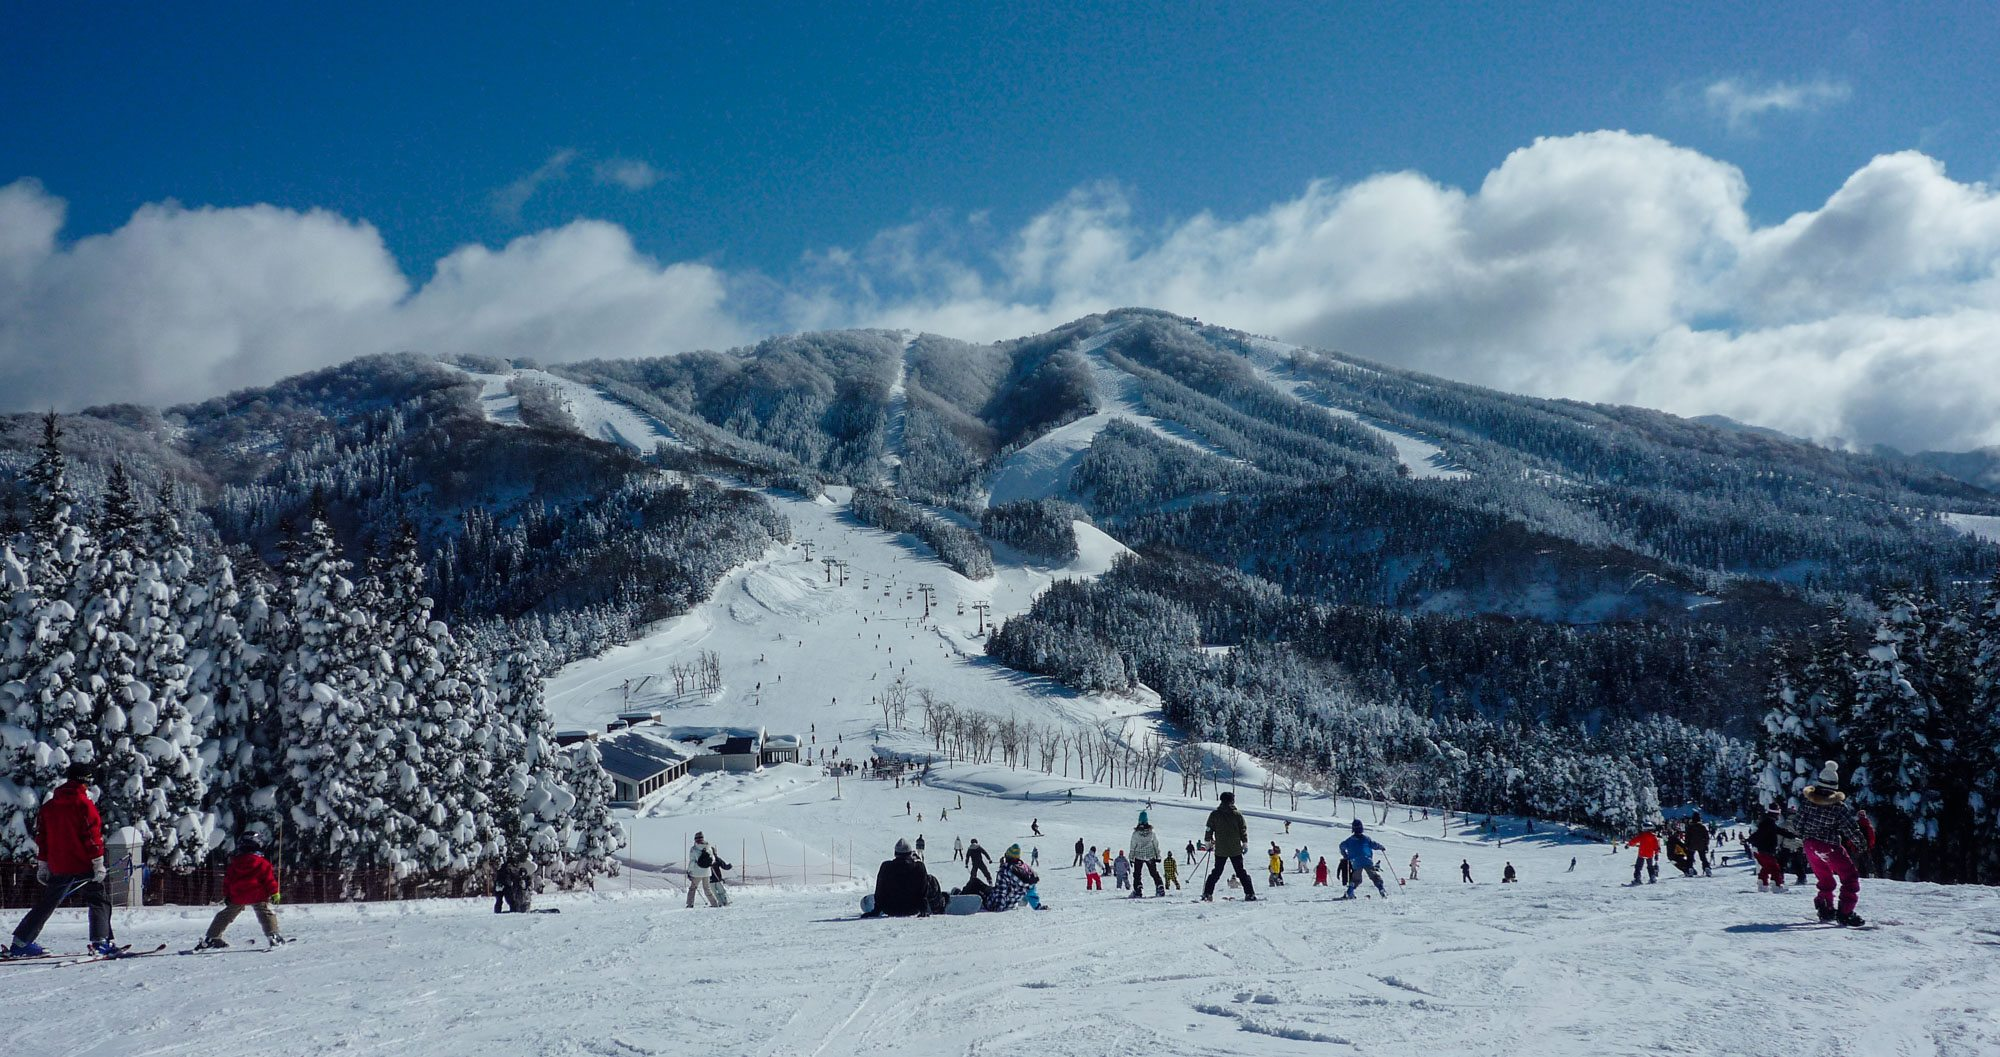 Skiers and snowboarders on the piste at Japan's beautiful Hakuba Valley ski resort